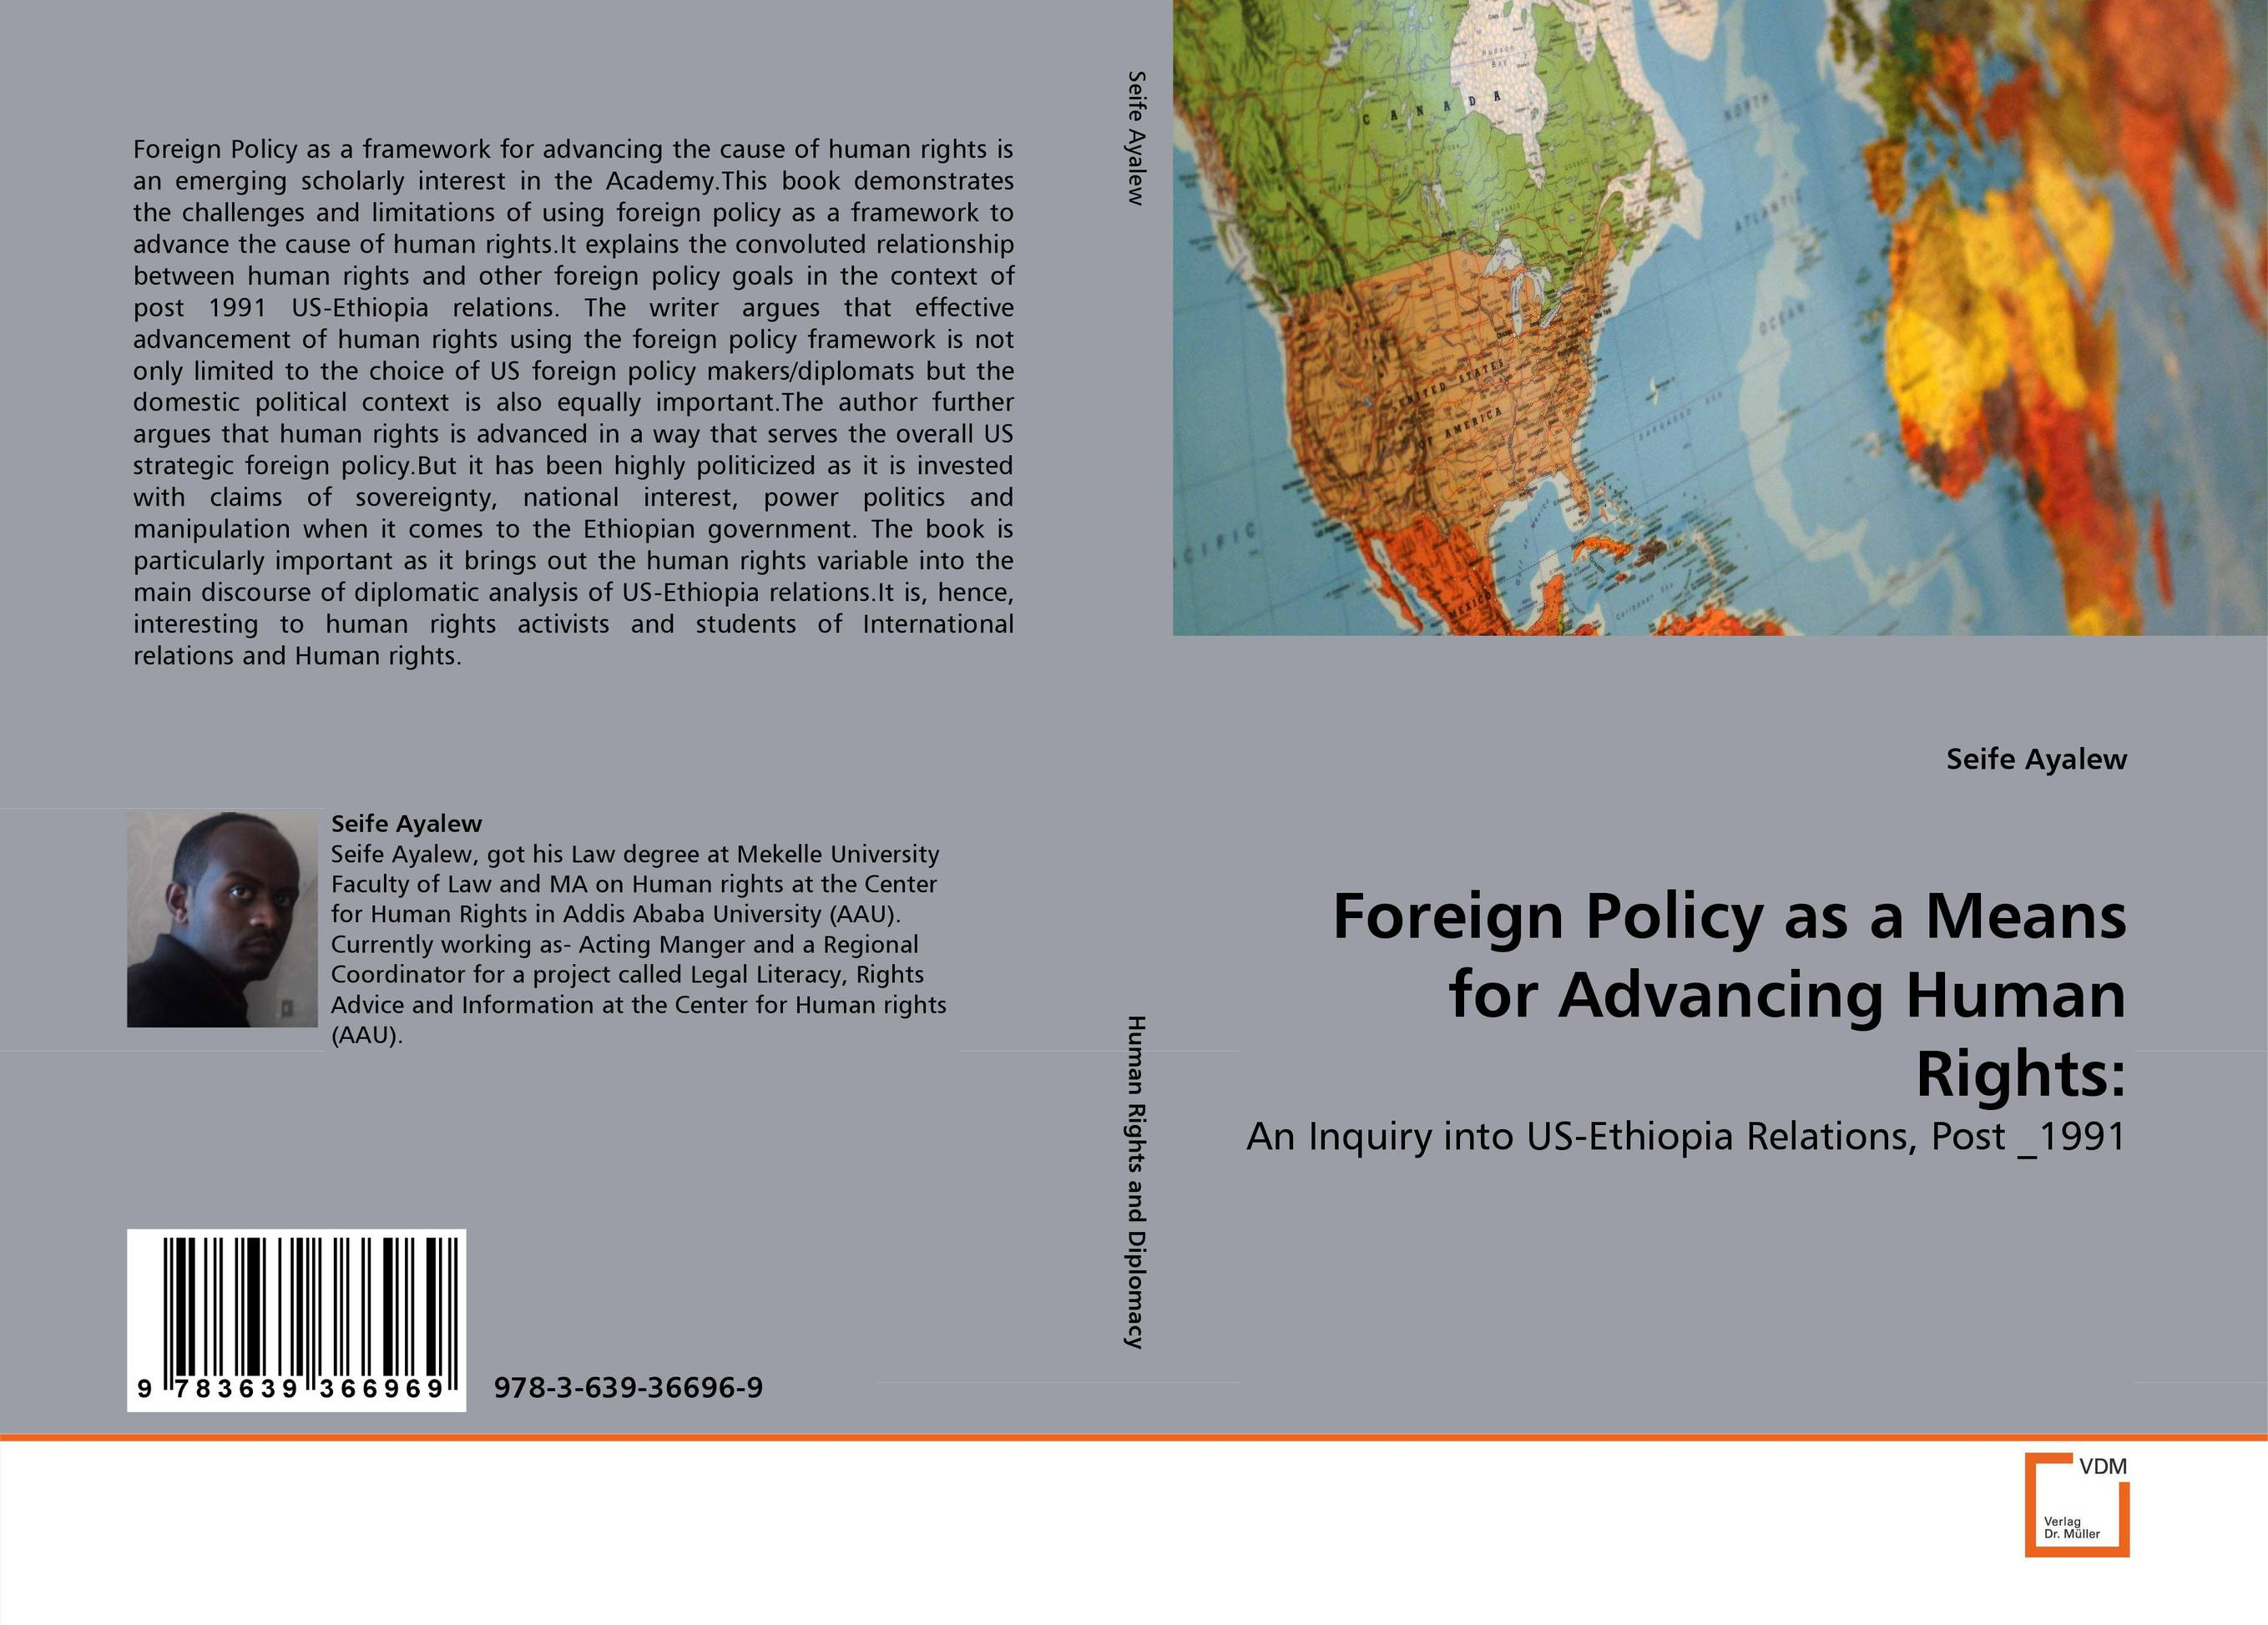 Foreign Policy as a Means for Advancing Human Rights: foreign policy as a means for advancing human rights